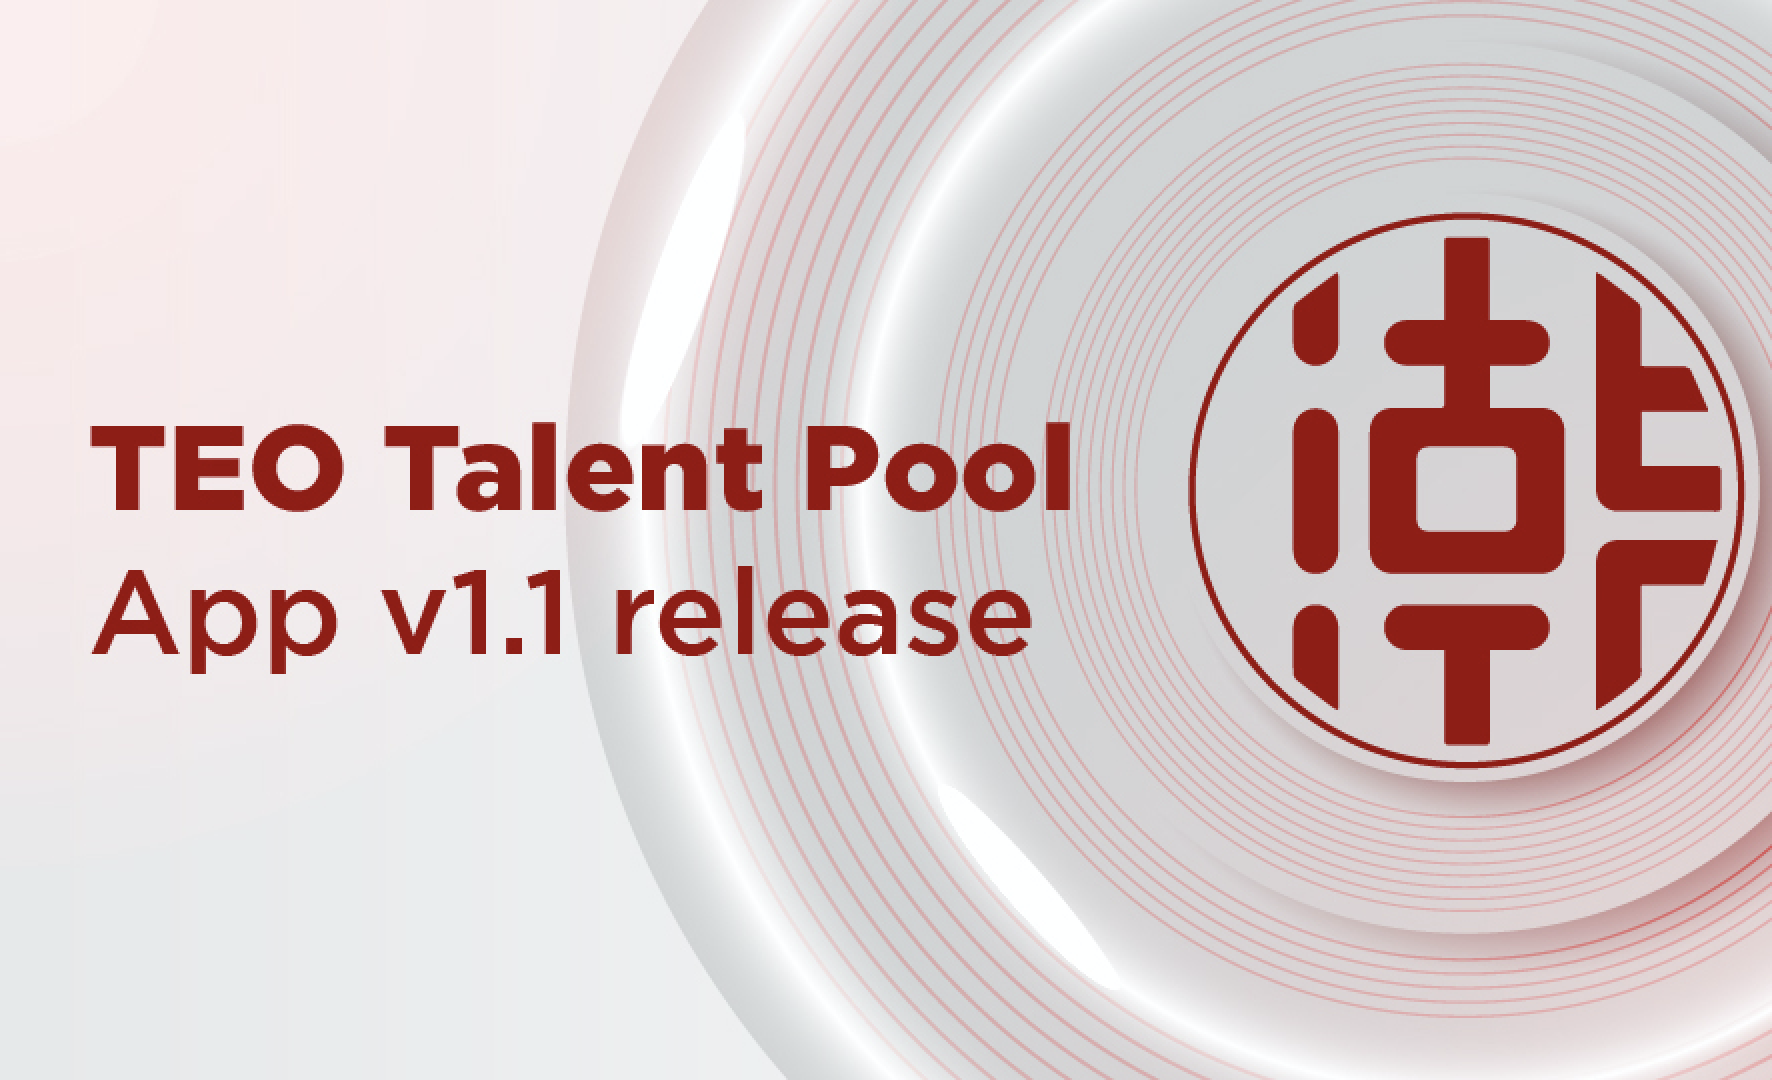 We are pleased to announce the launch of TEO Talent Pool App v1.1